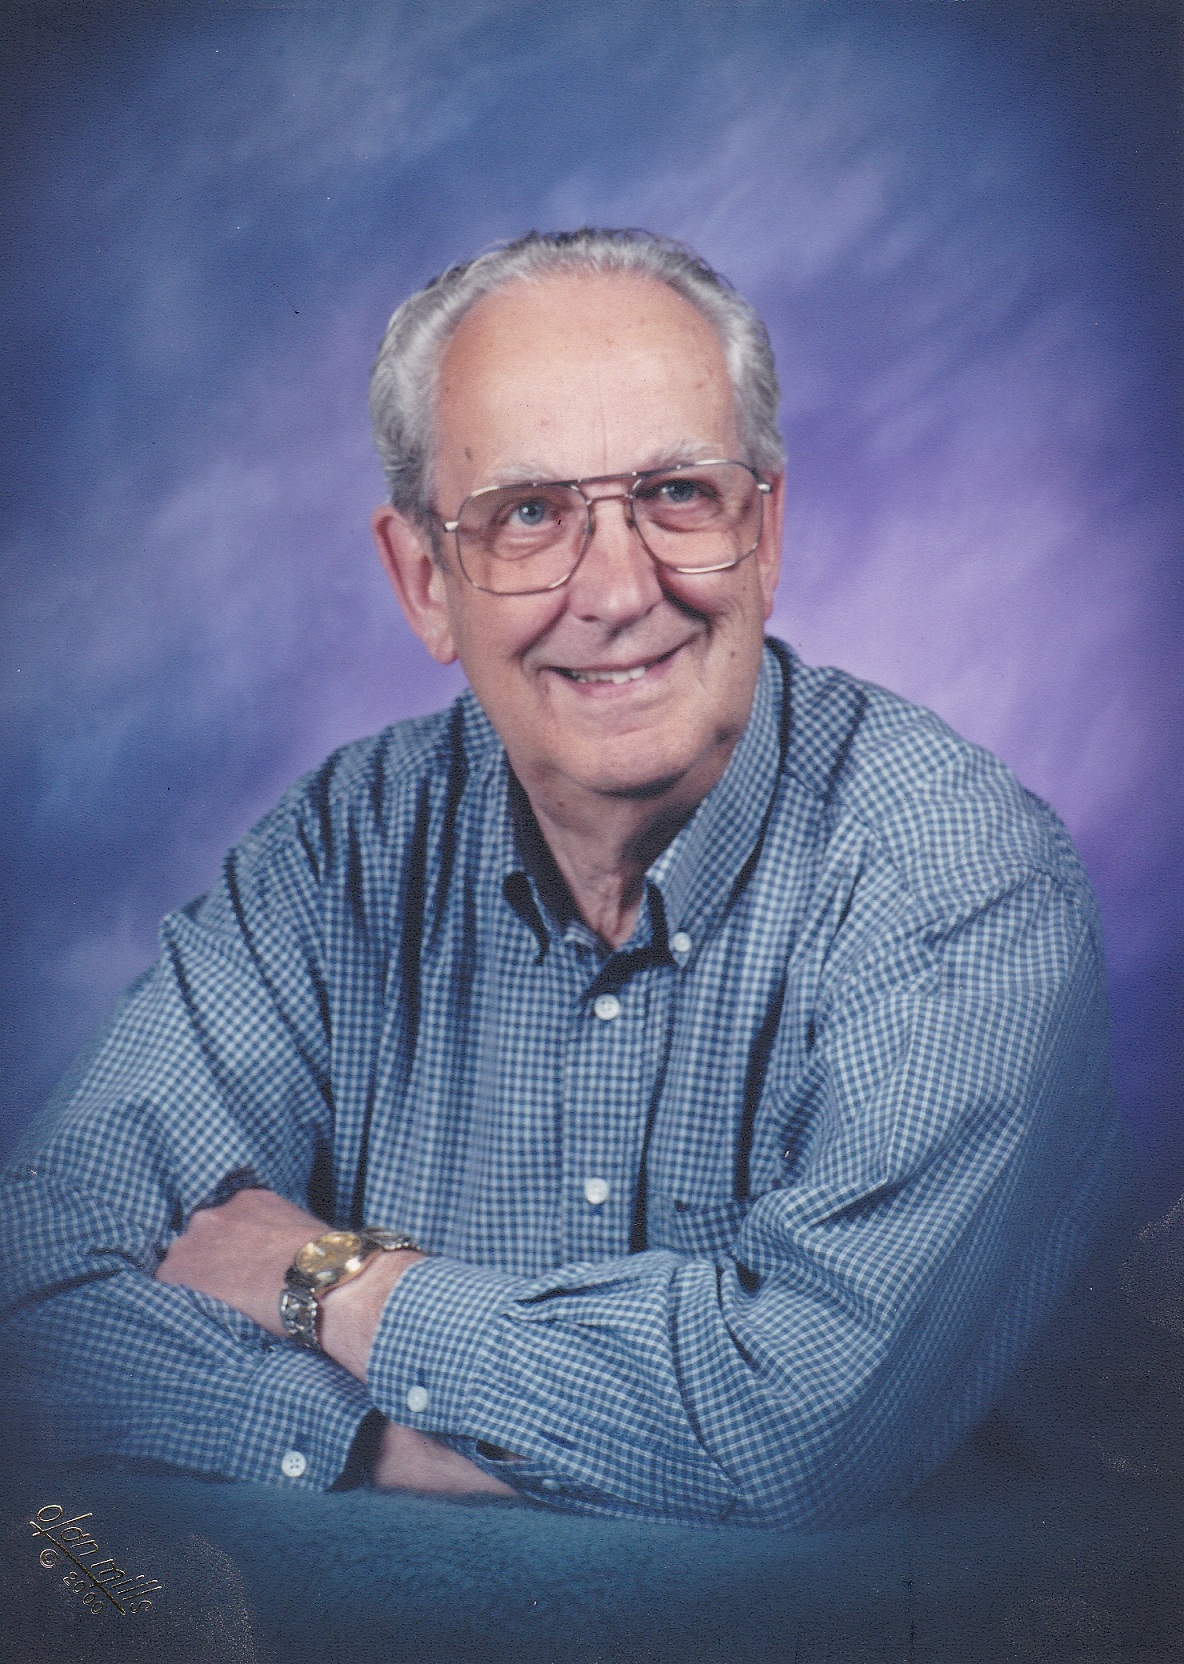 Soderlund Lloyd obit photo